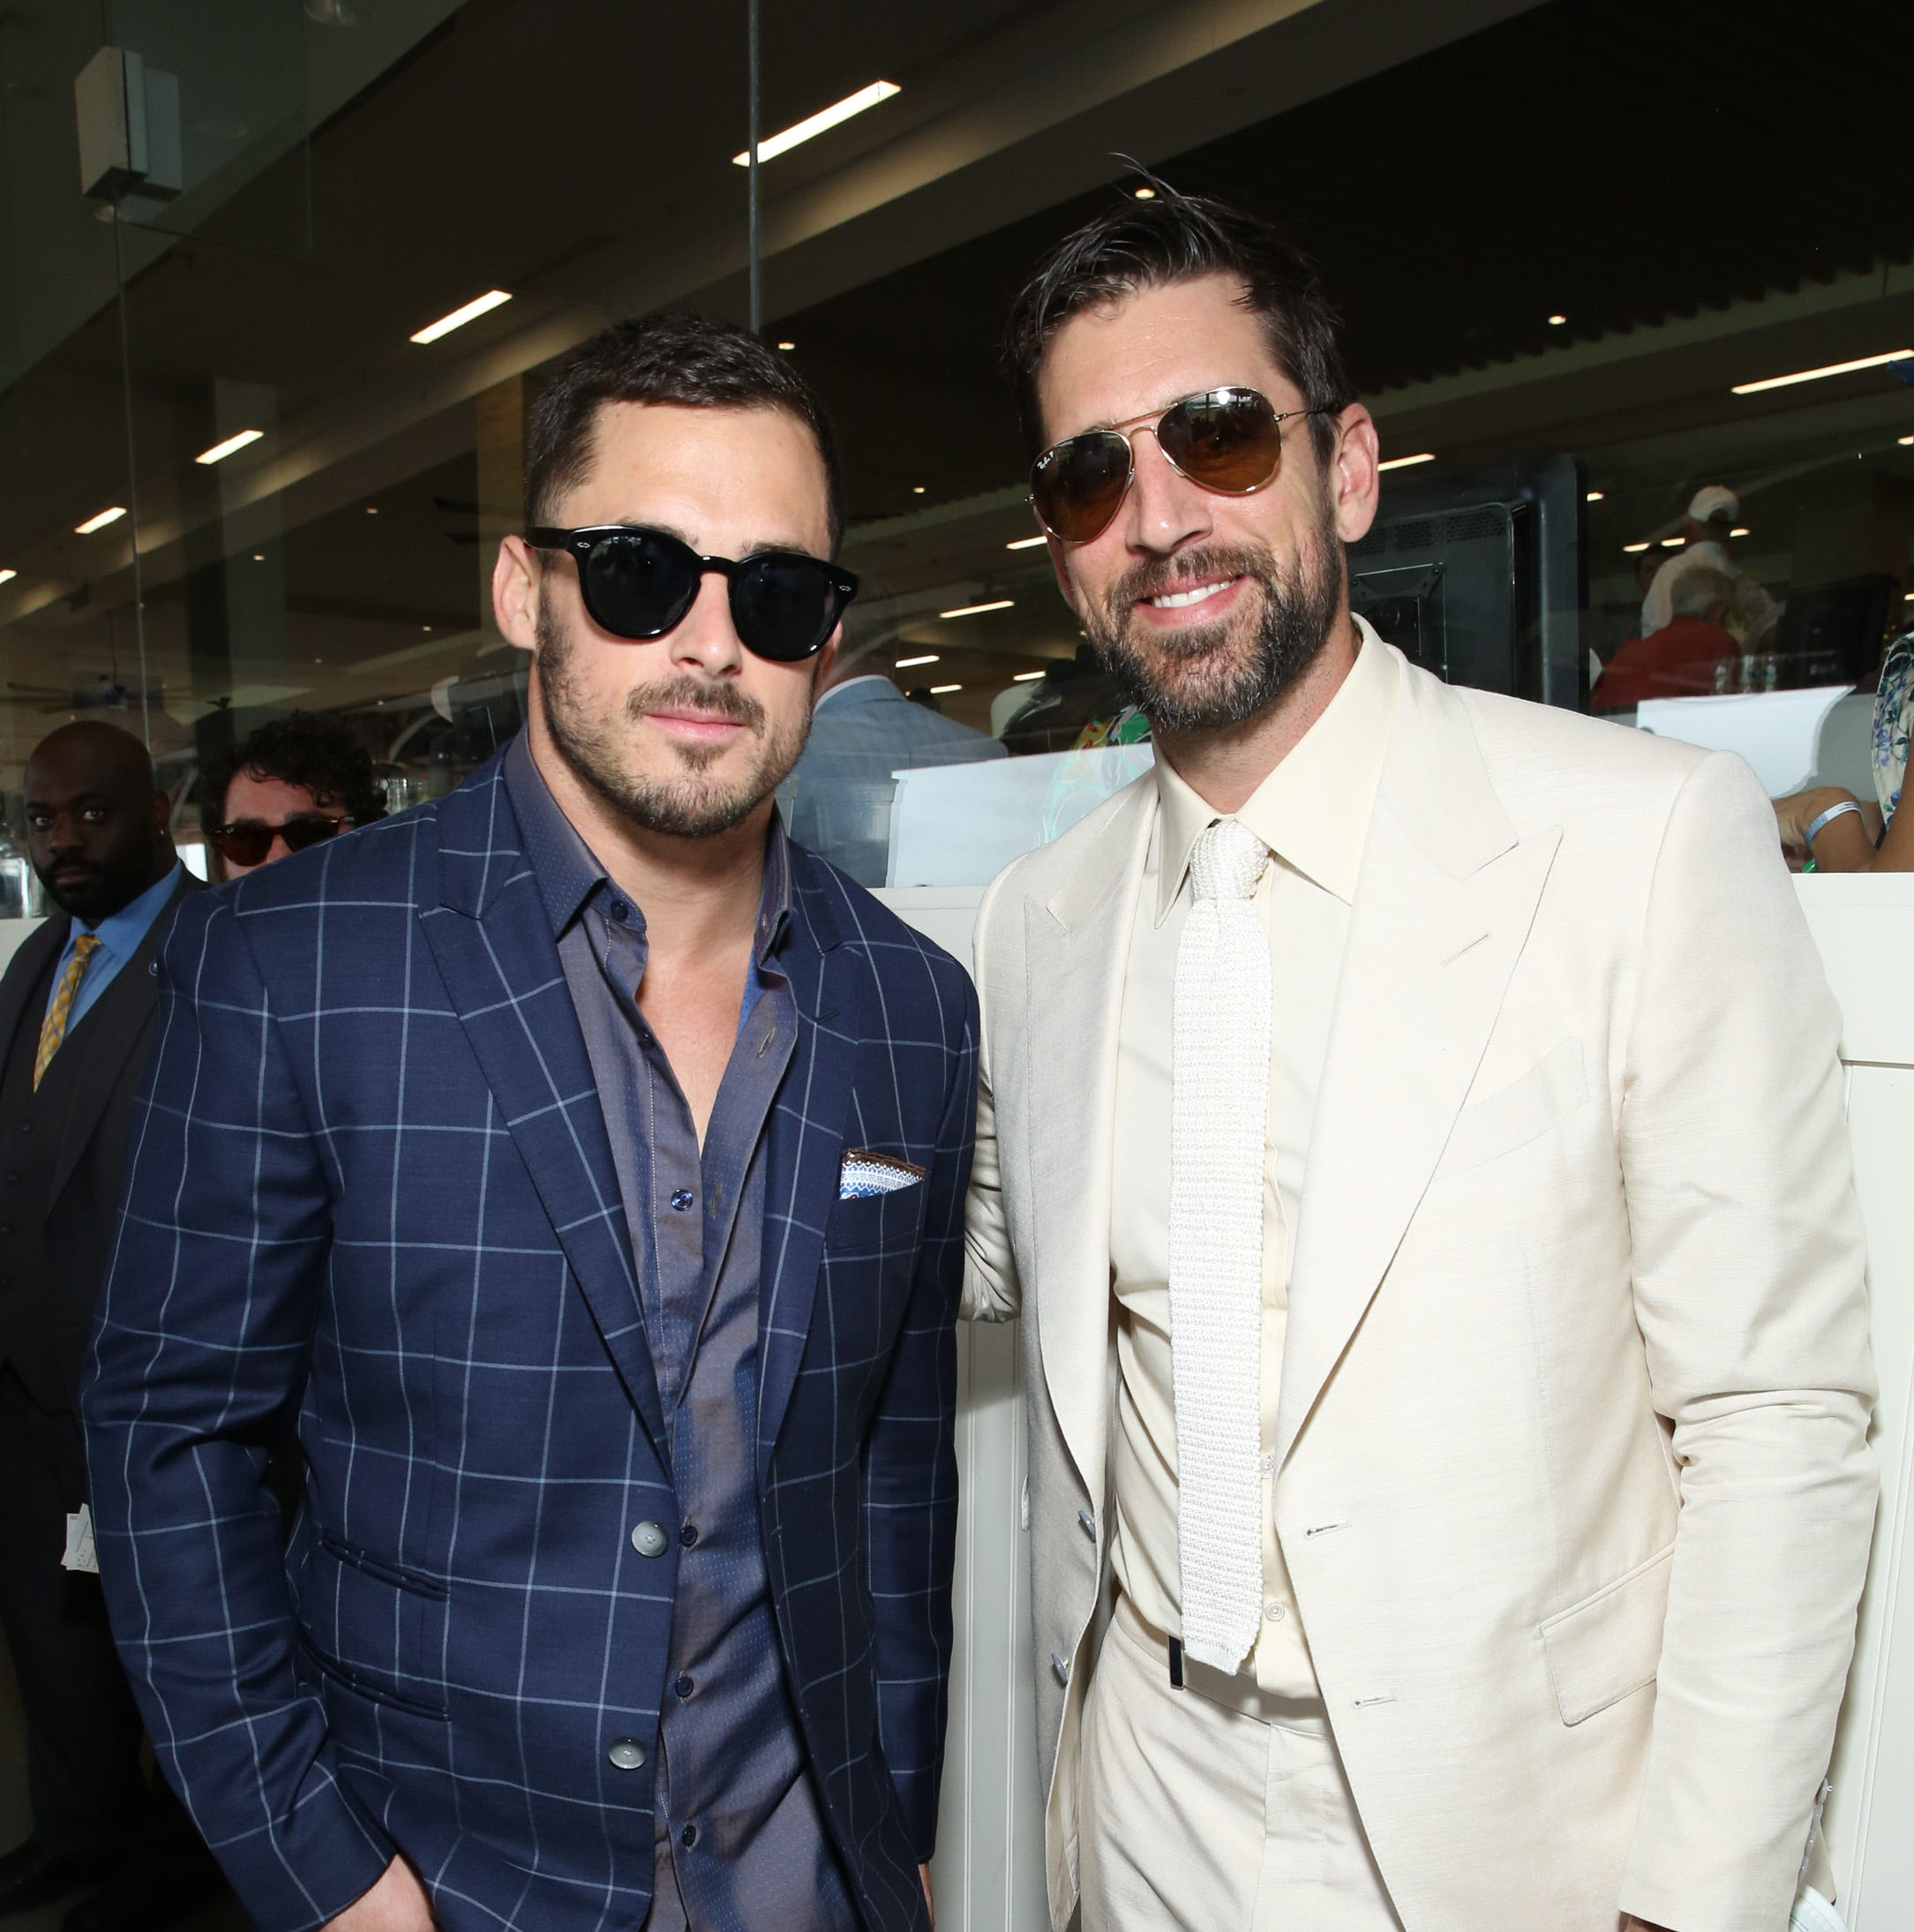 Aaron Rodgers and 'The Crew' make the rounds on Kentucky Derby weekend